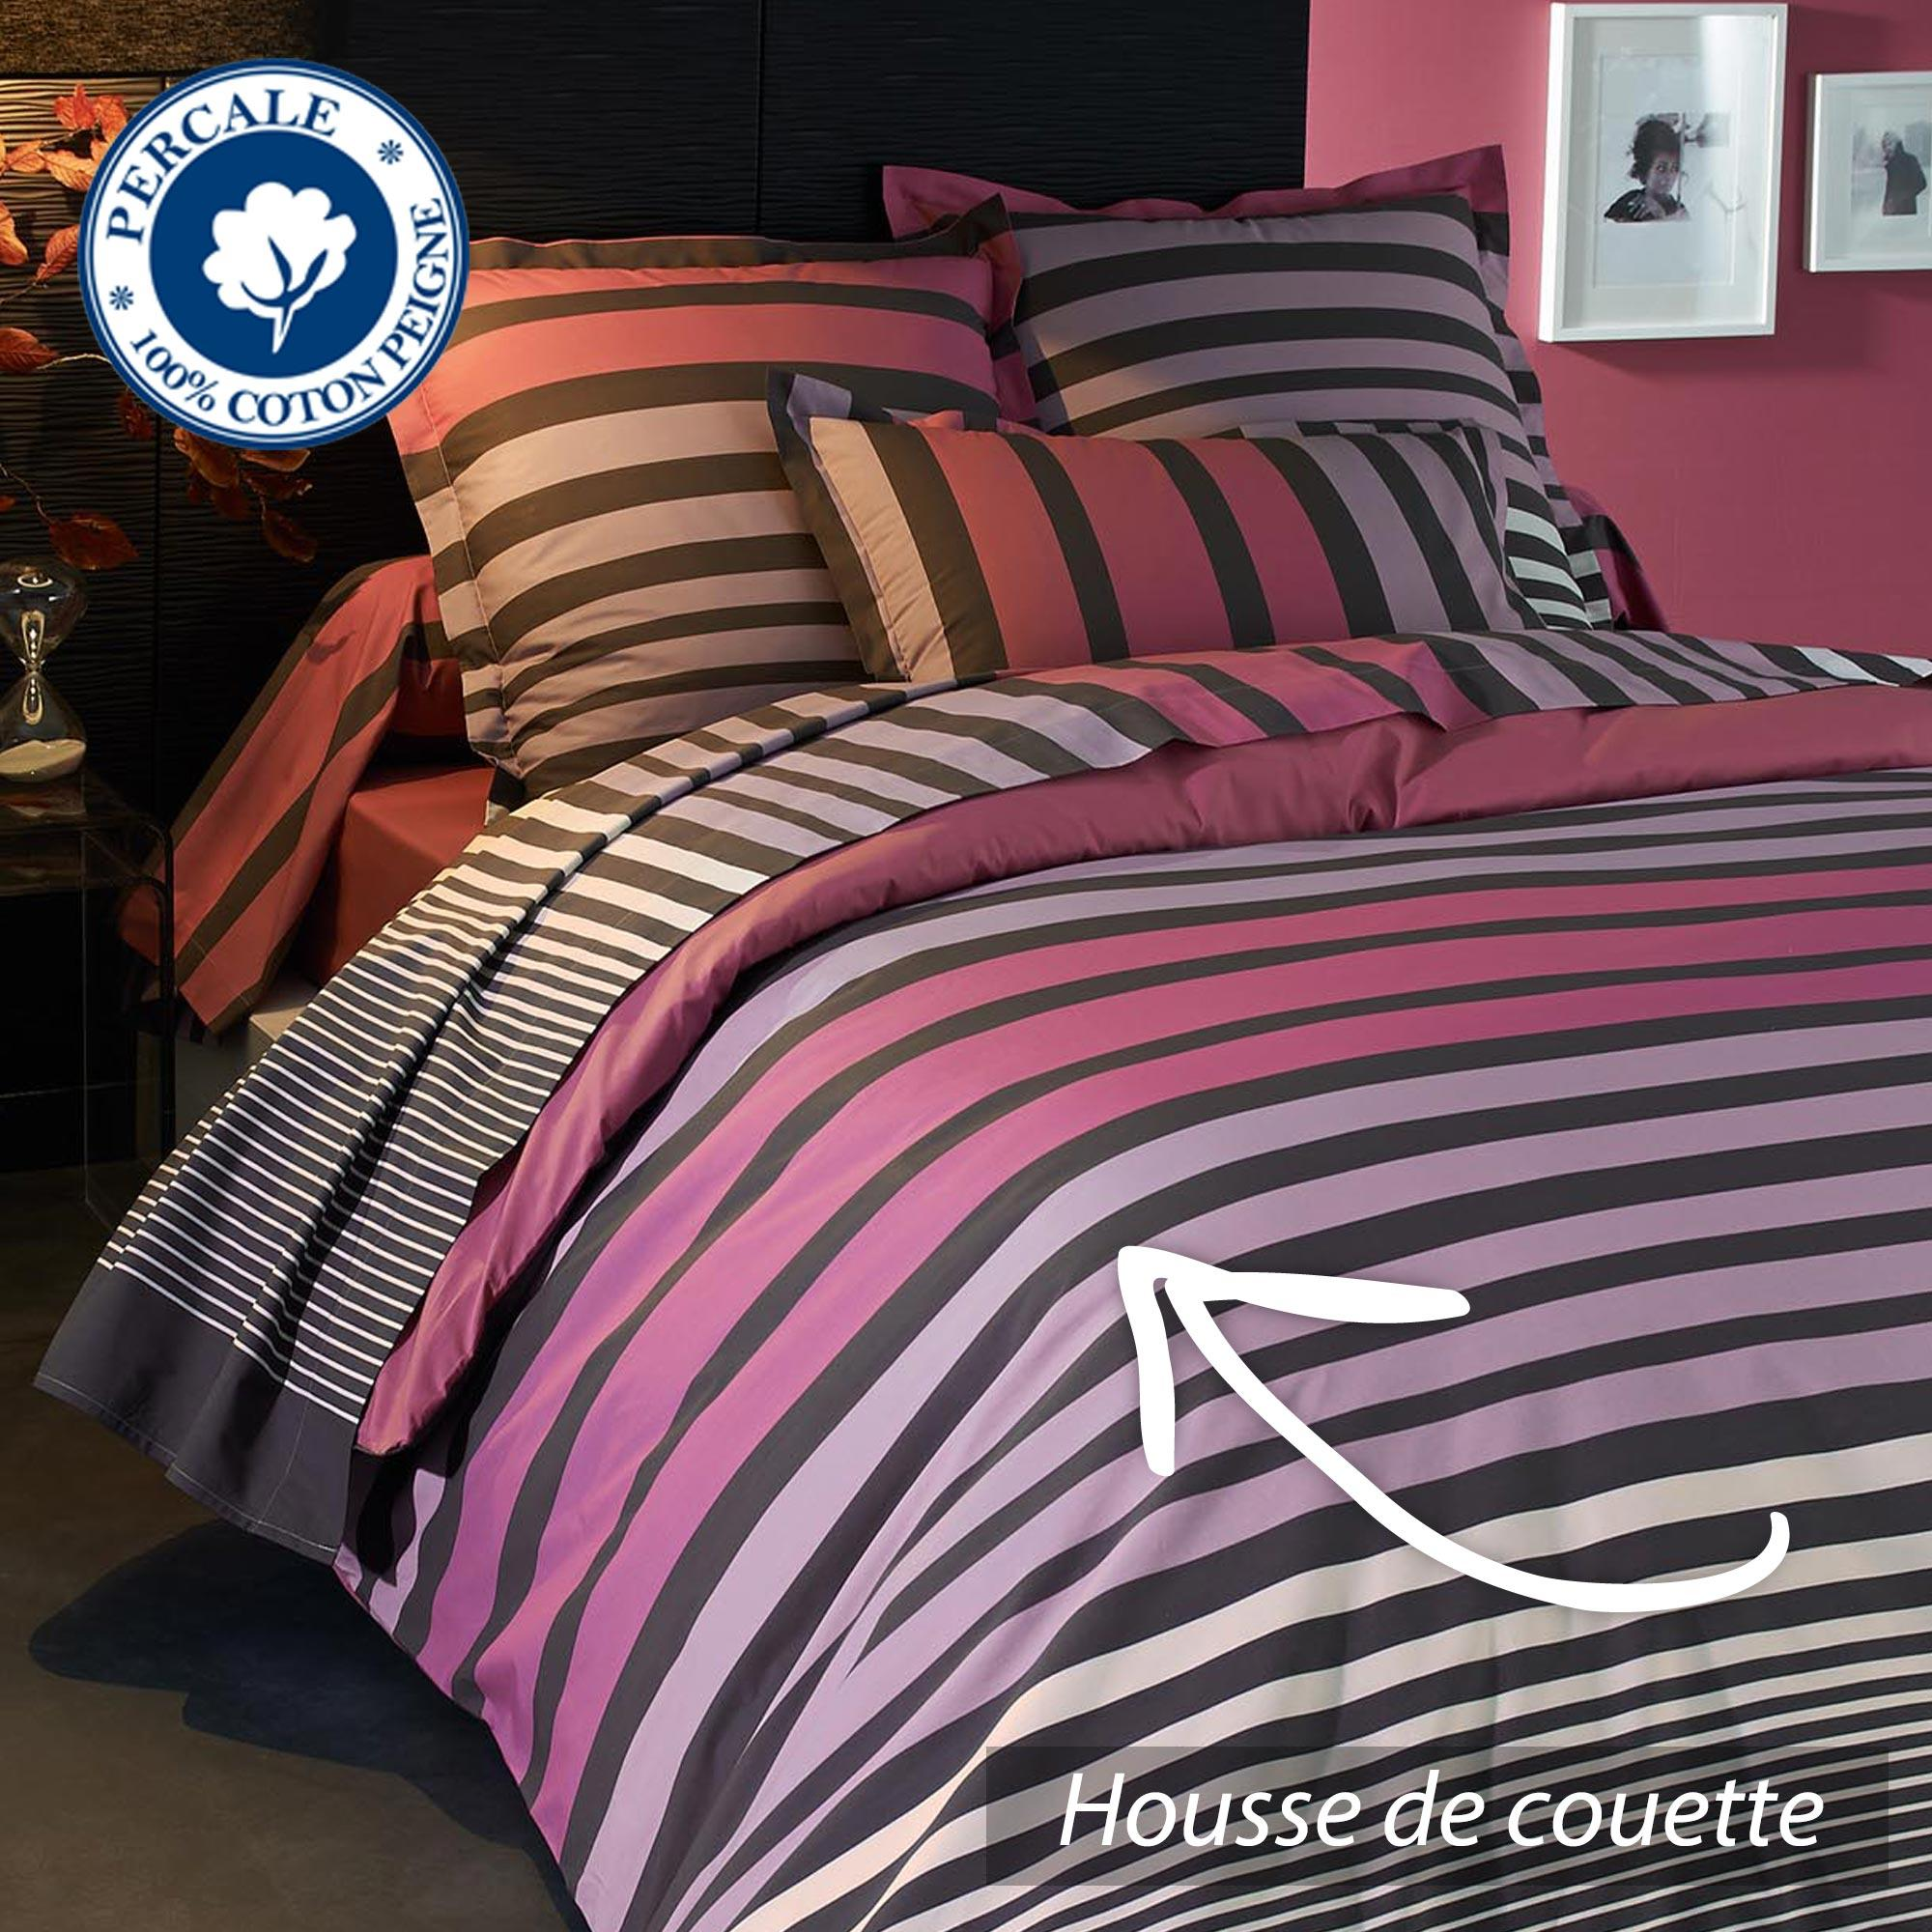 housse de couette percale pur coton peign 260x240 cm stripe camelia linnea vente de linge de. Black Bedroom Furniture Sets. Home Design Ideas